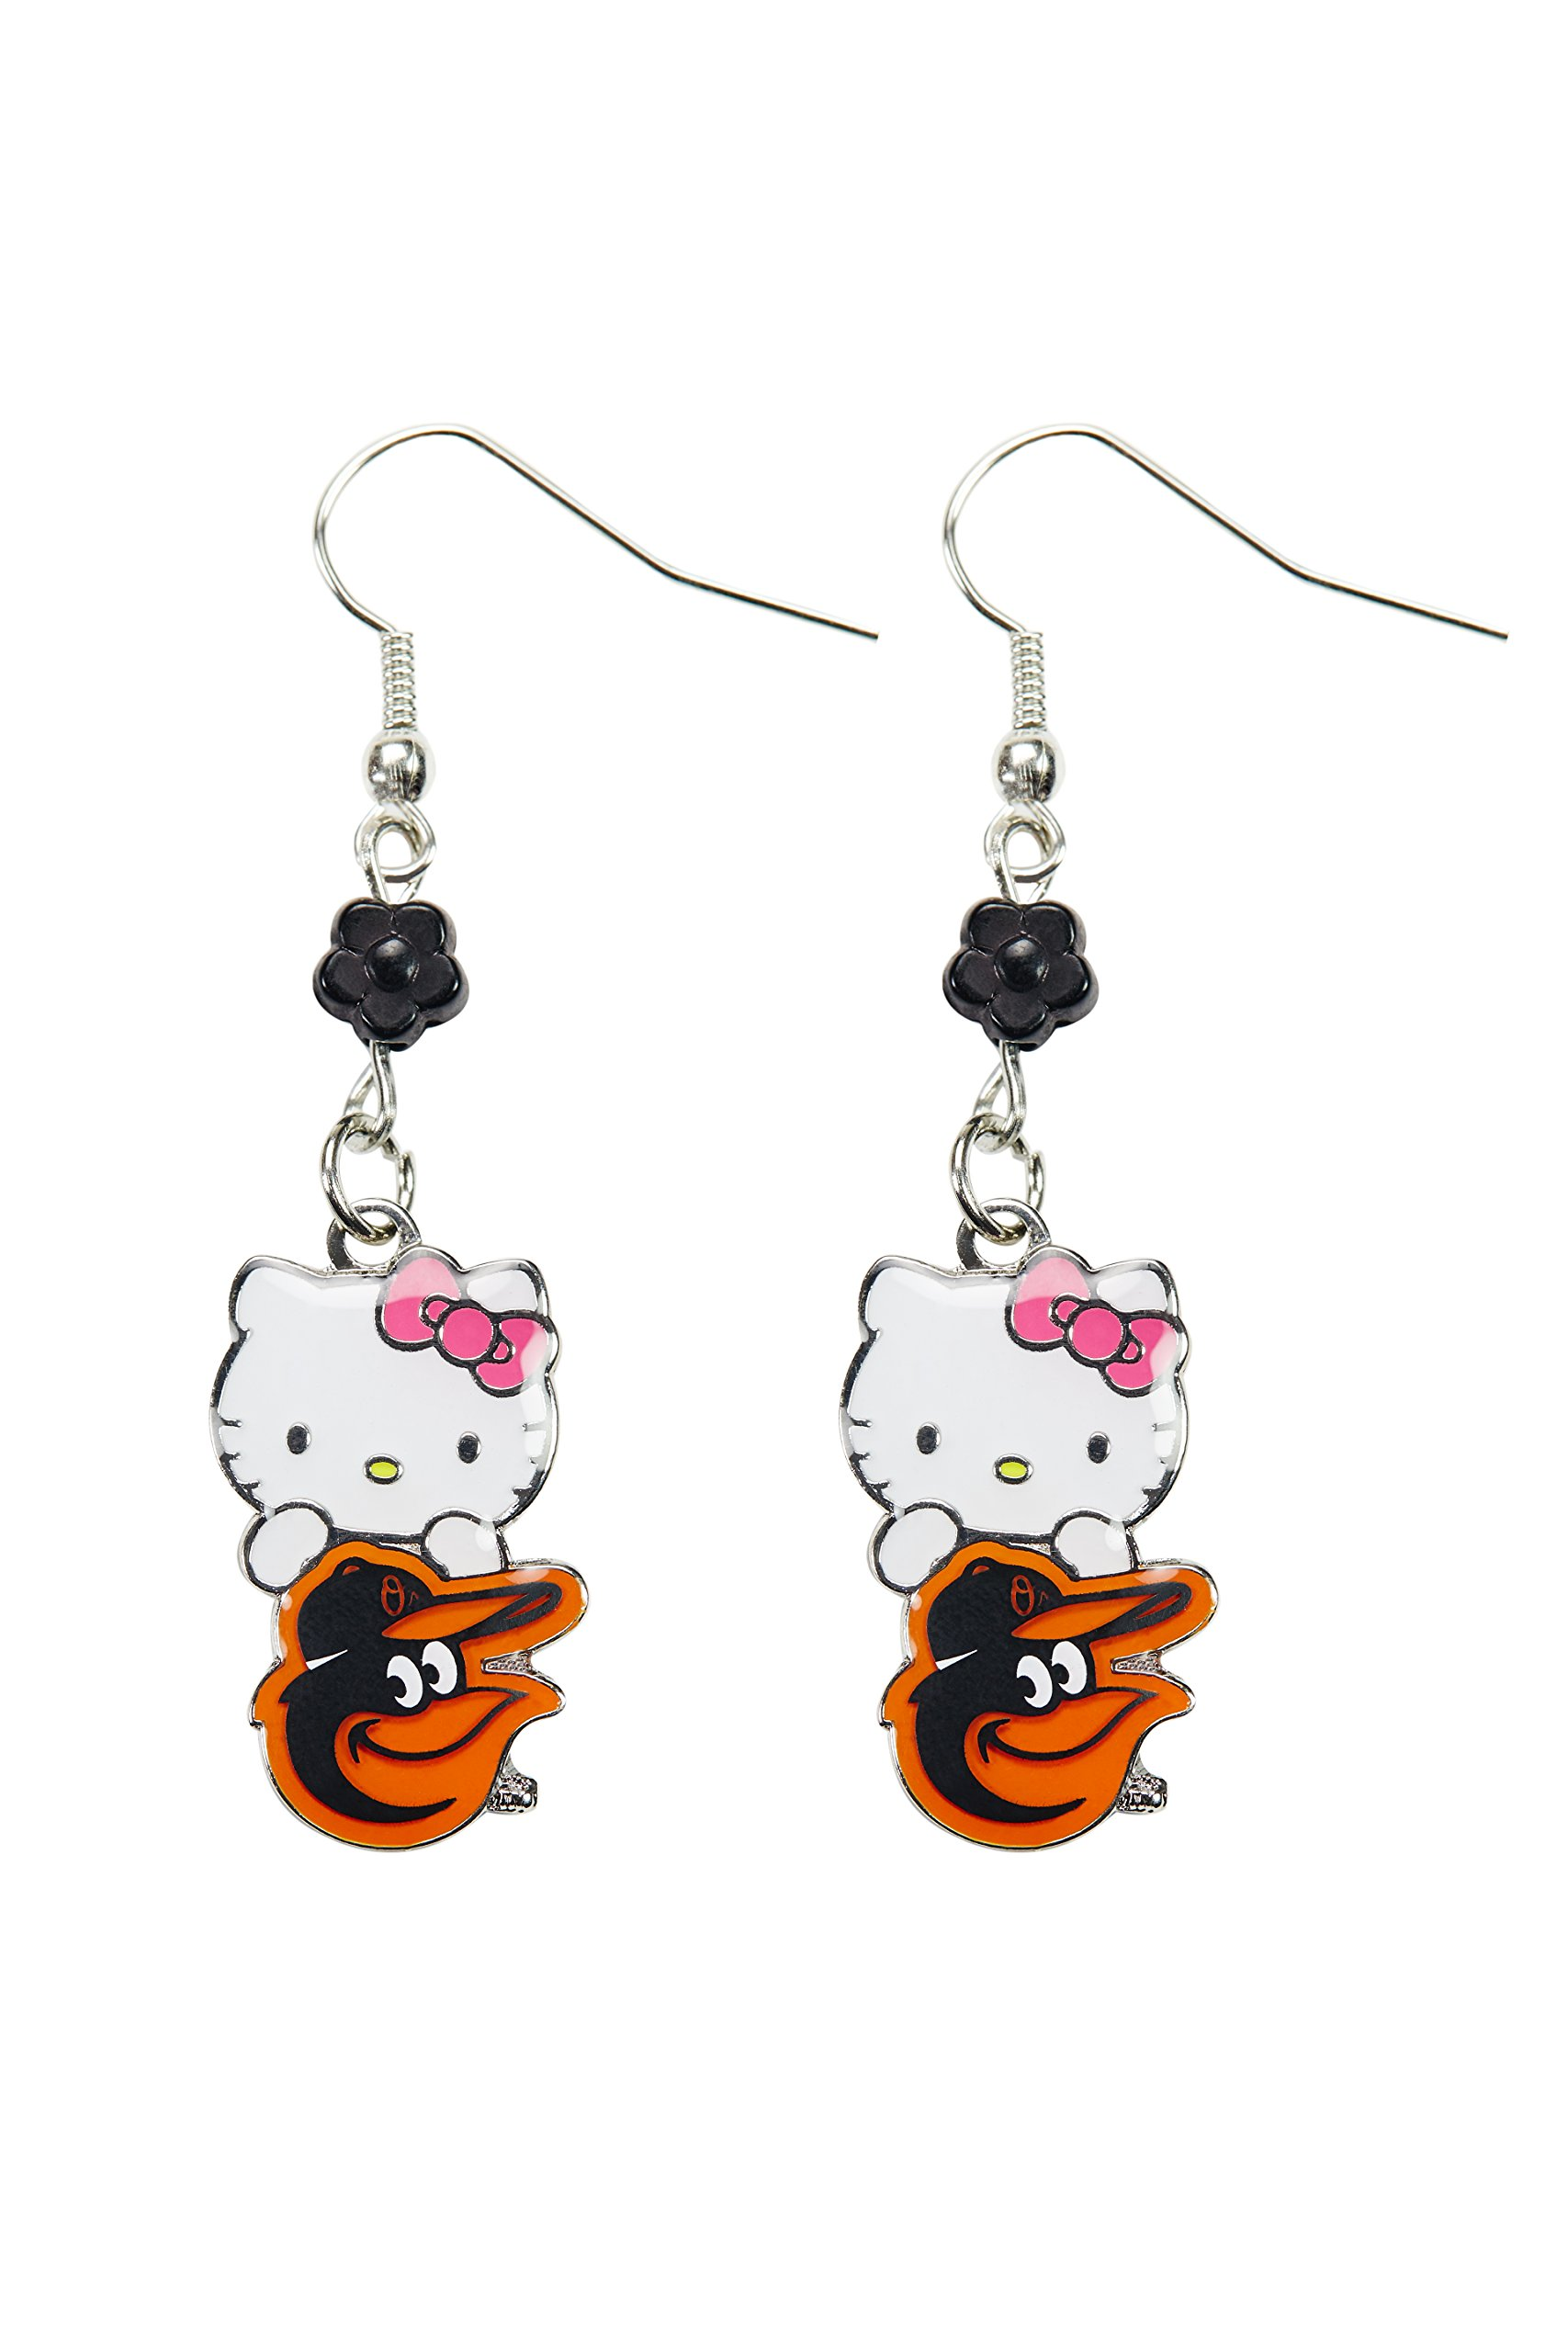 812487828 Get Quotations · MLB Baltimore Orioles Hello Kitty Sophie Beaded Earrings